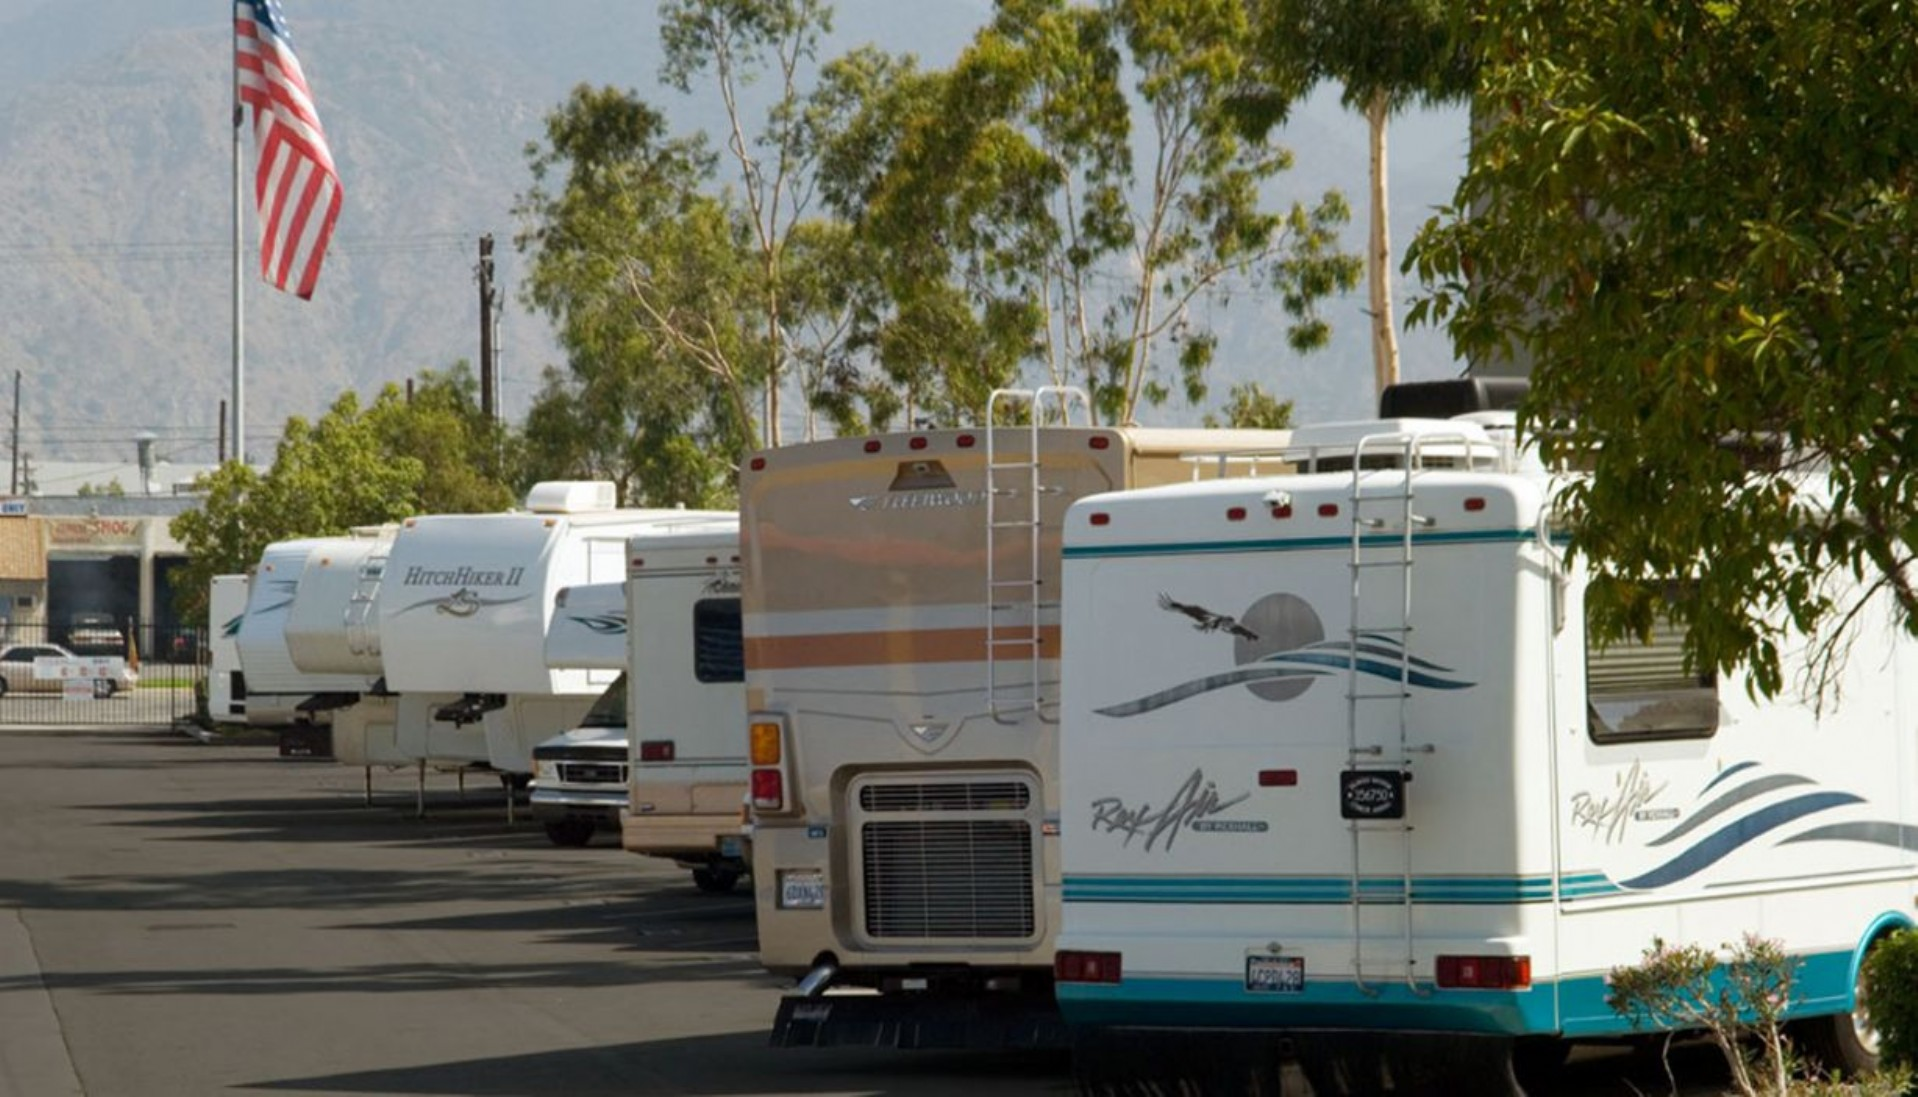 RV's parked in spacious outdoor parking storage area